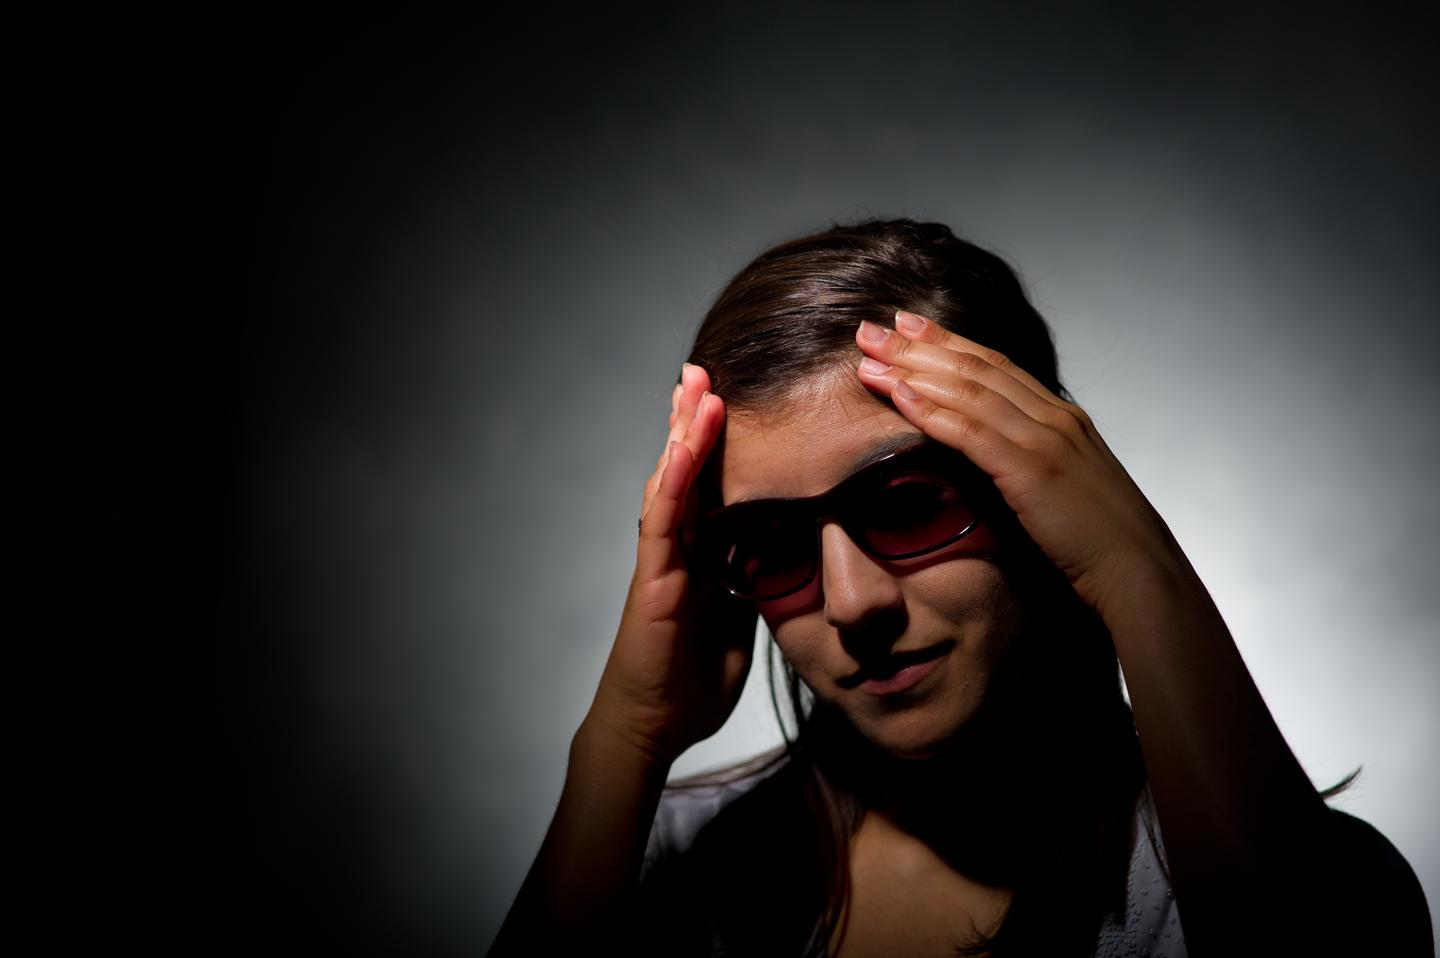 A team of scientists have discovered why wearing precision-tinted glasses helps reduce migraine headaches (Photo: G.L. Kohuth)